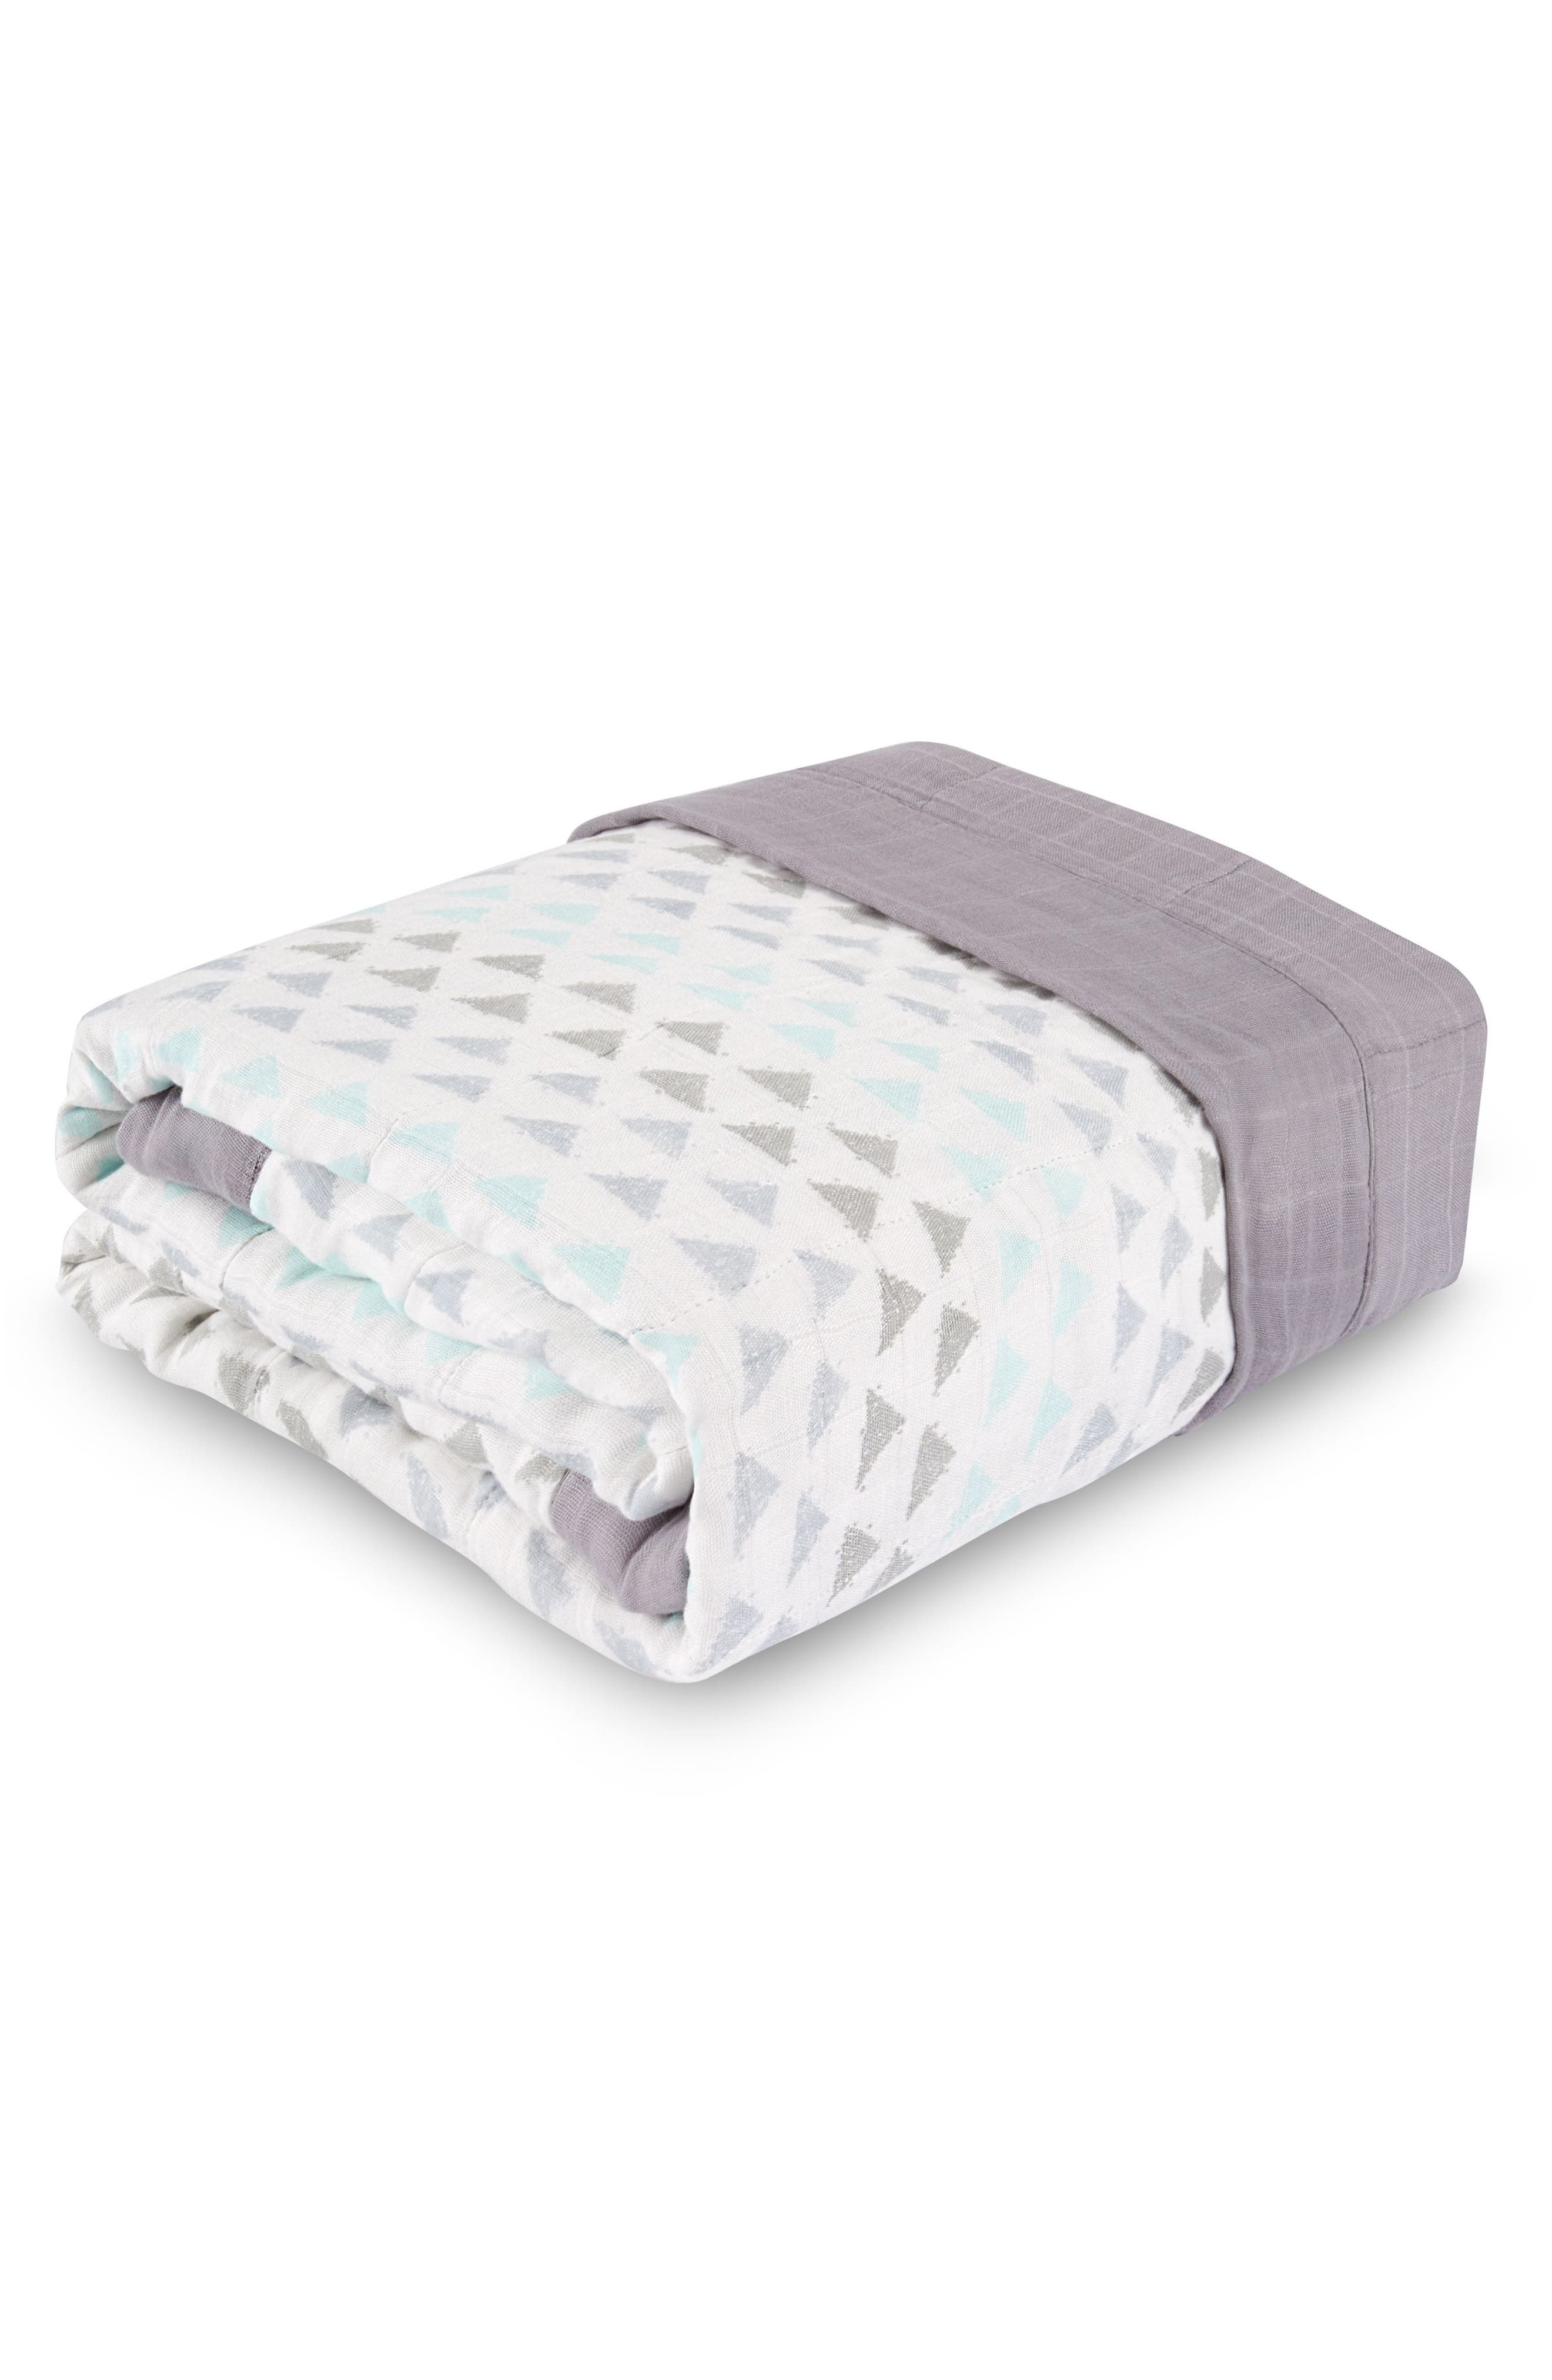 Alternate Image 1 Selected - aden + anais Oversize Muslin Blanket